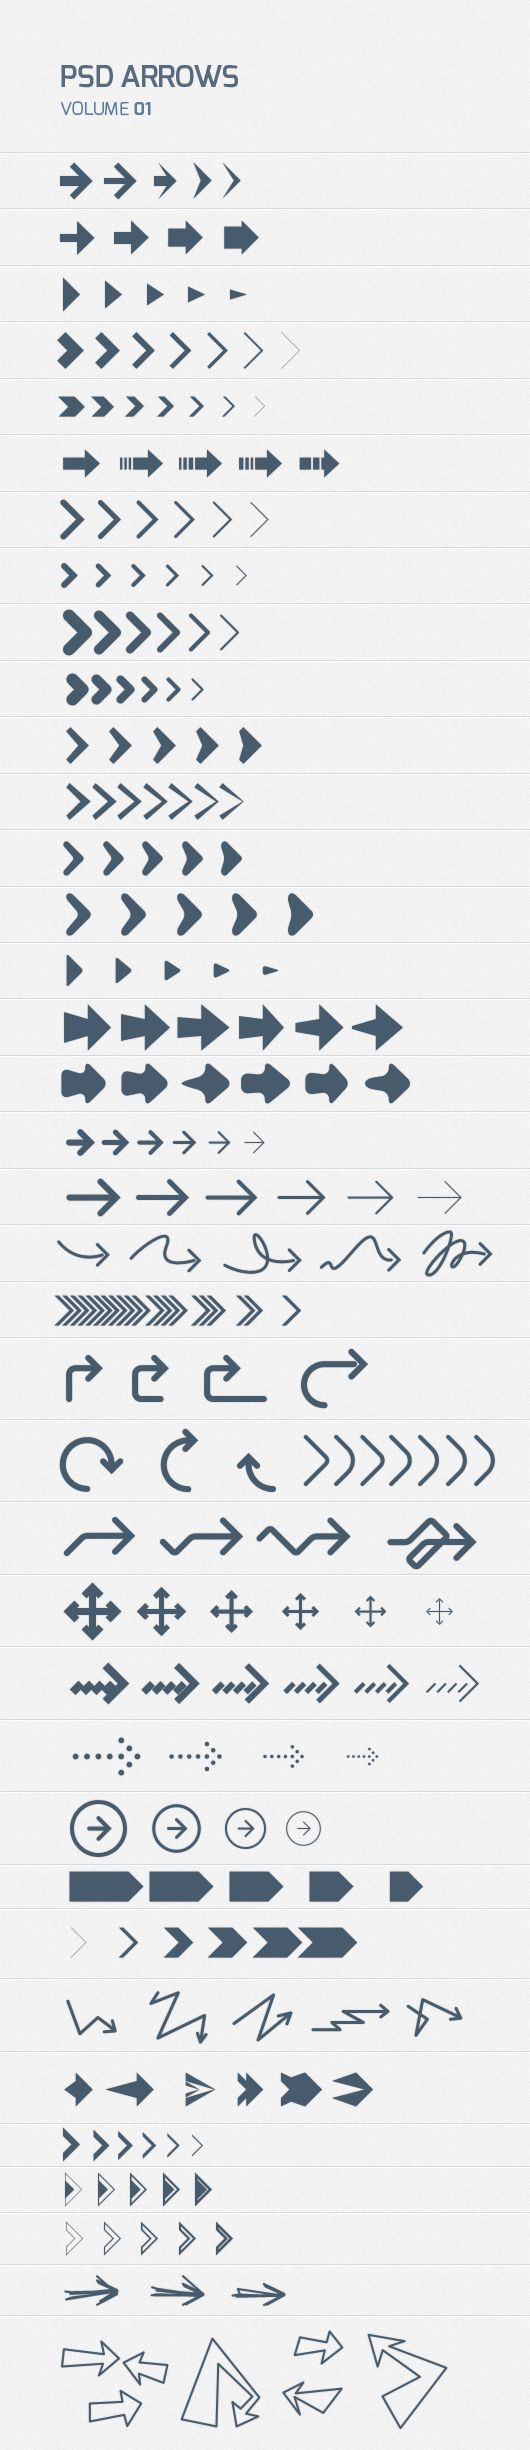 200+ Free Psd Arrows